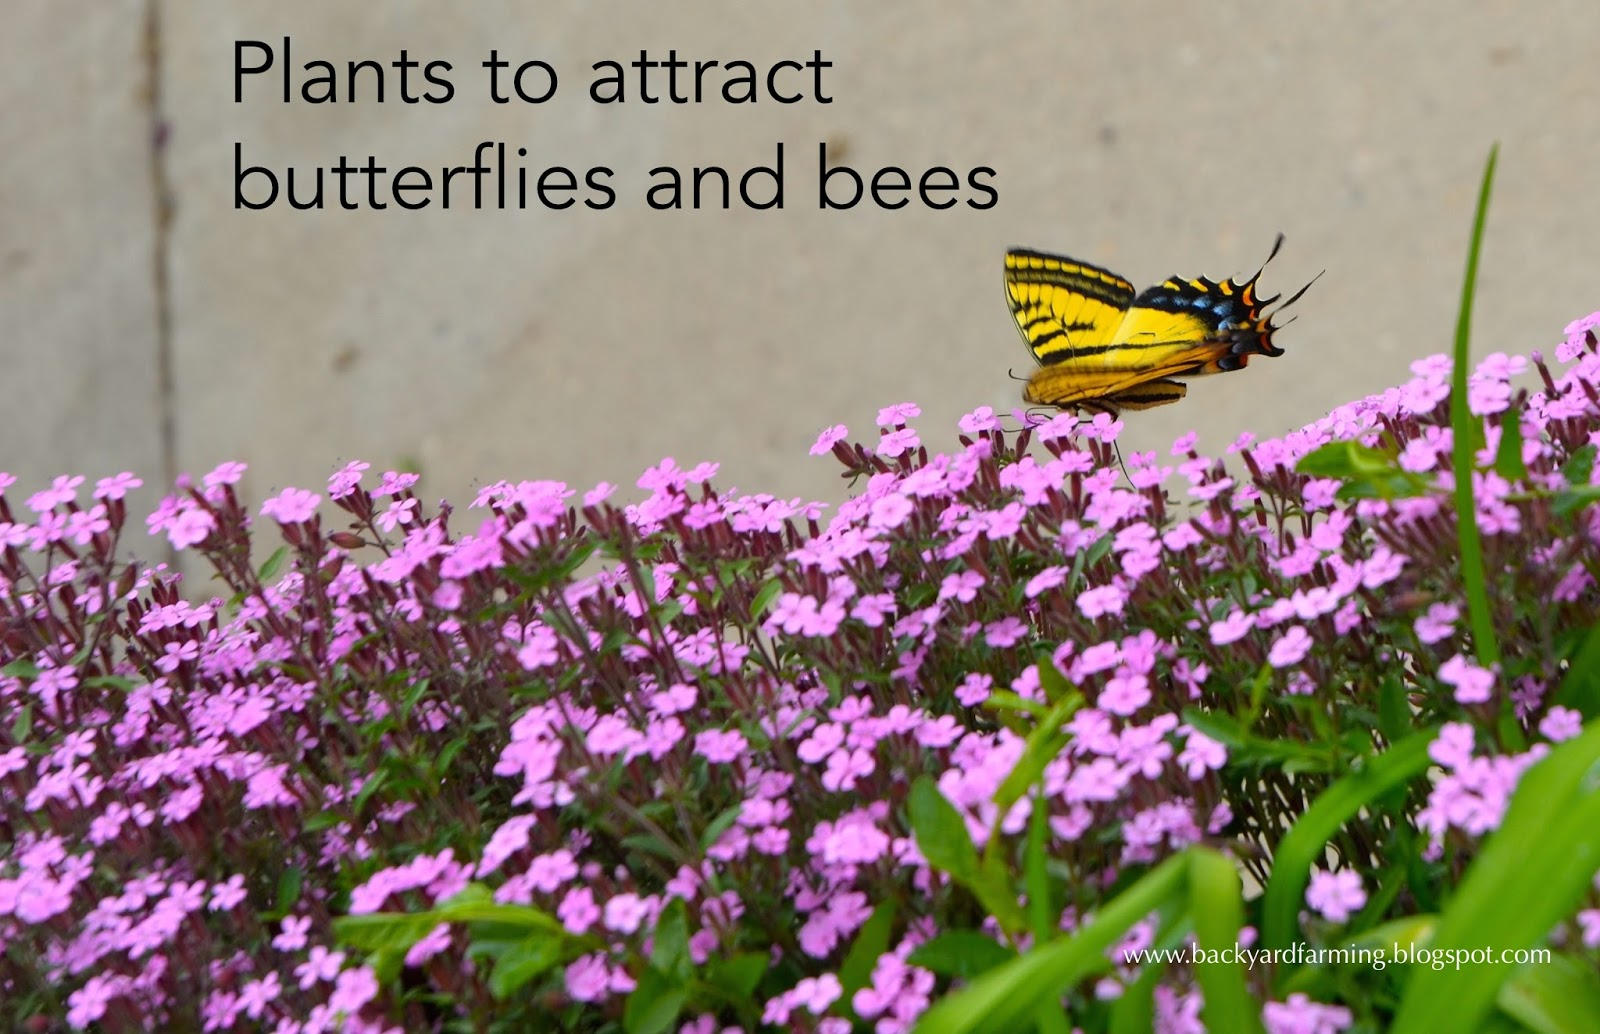 Backyard Farming: Plants to attract butterflies and bees